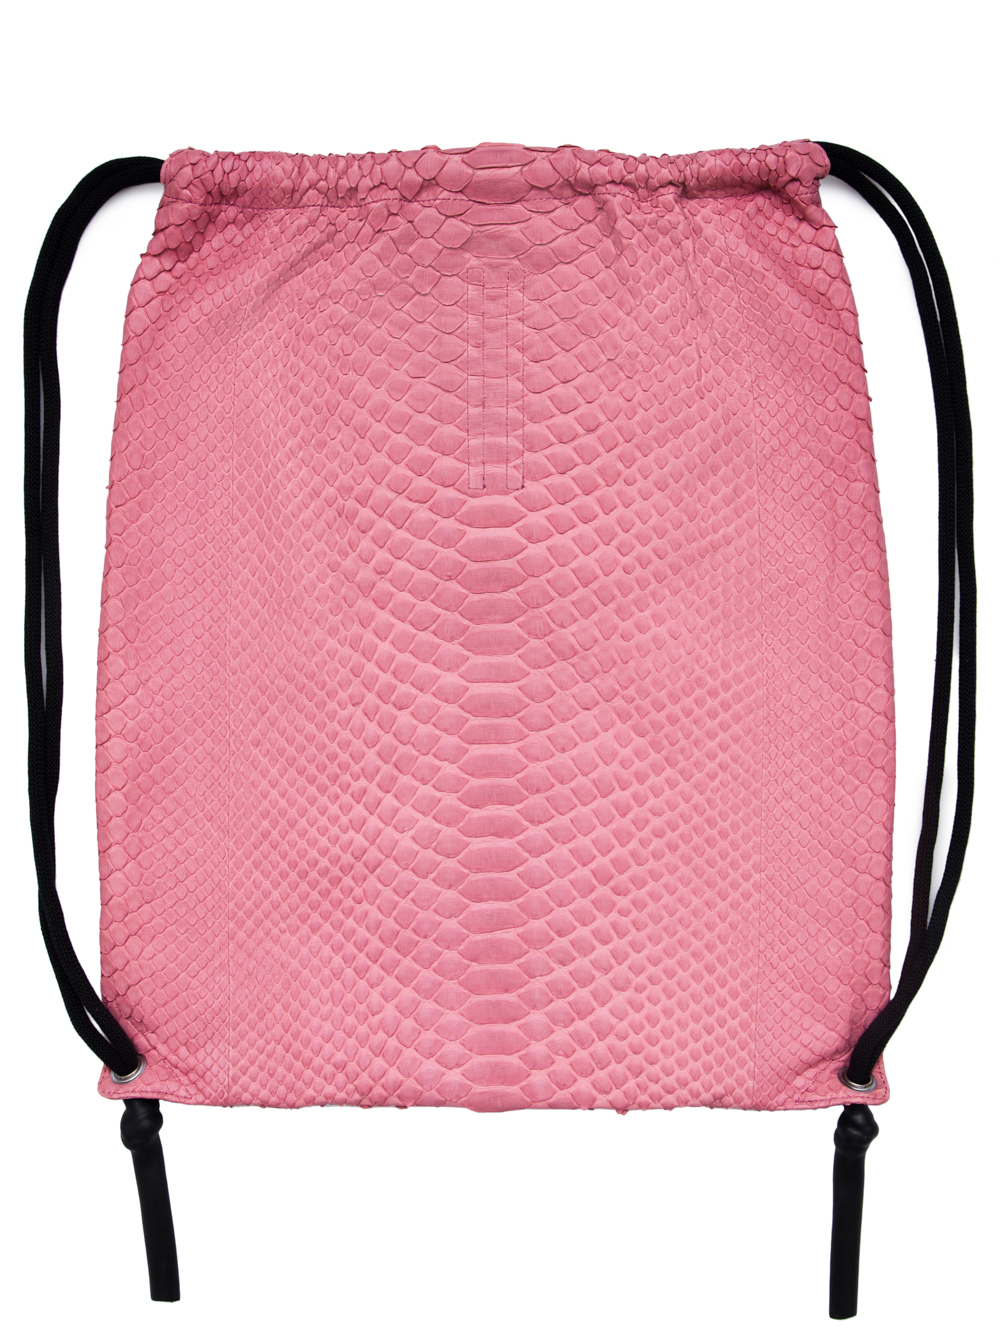 RICK OWENS FW18 SISYPHUS DRAWSTRING BACKPACK IN PINK PYTHON LEATHER